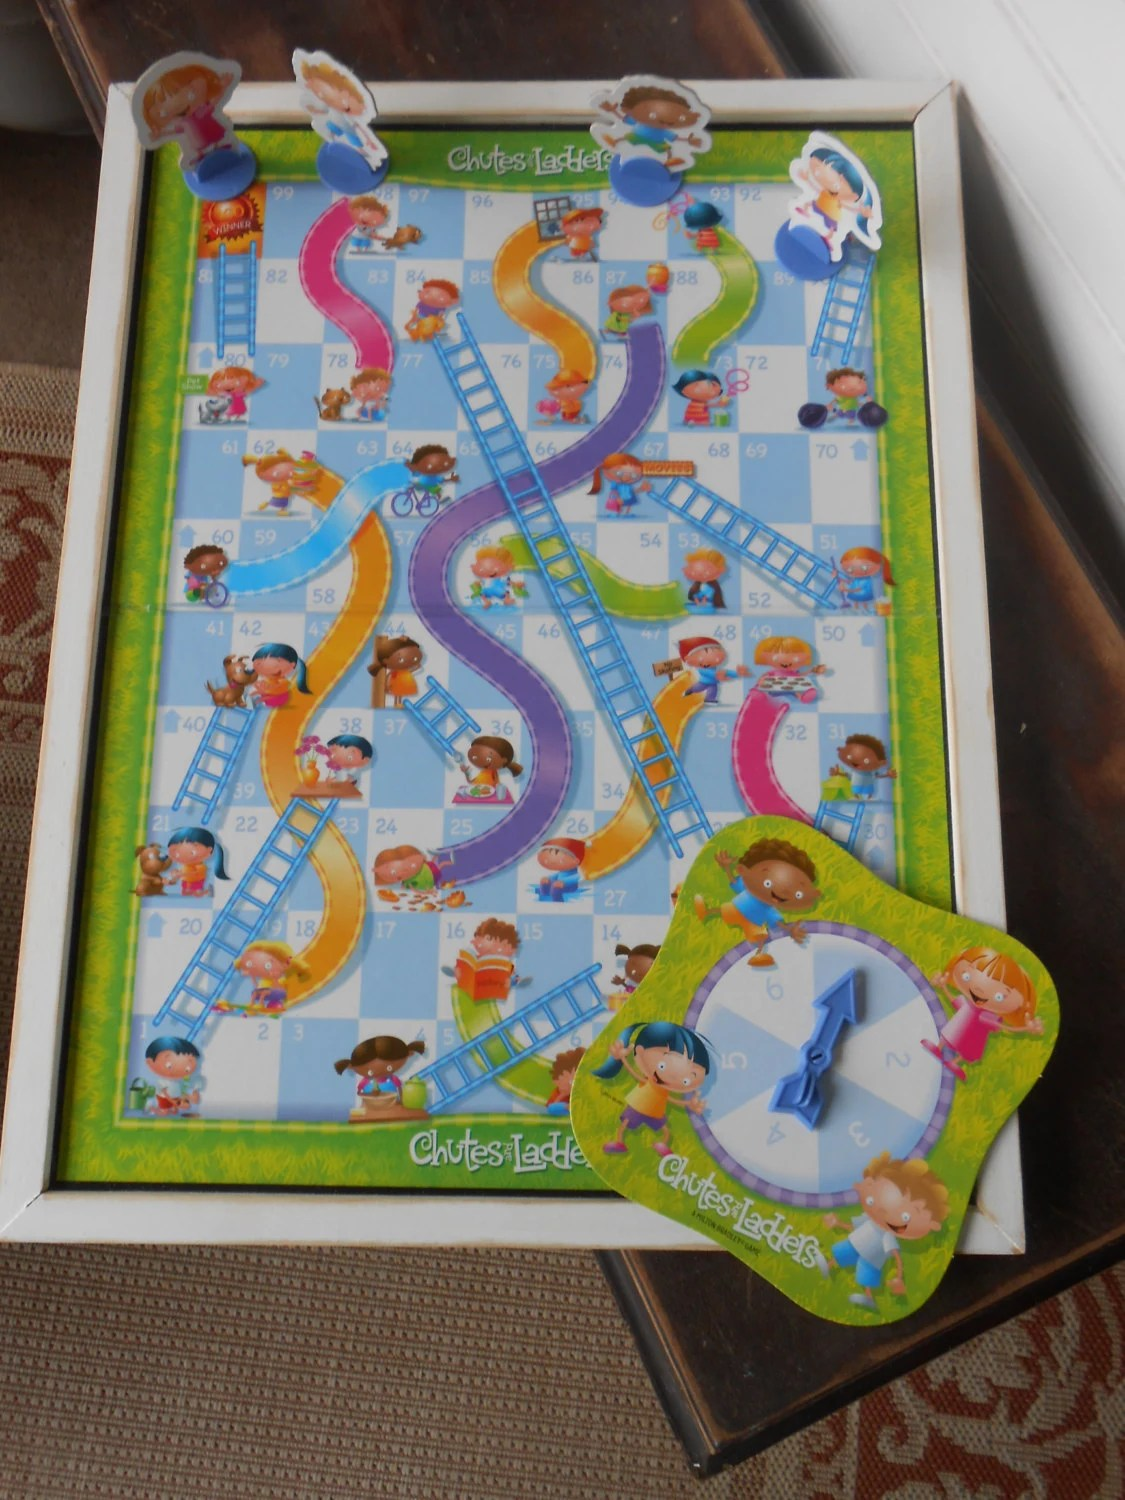 Decorative Game Boards Childs Game Children Board Game Nursery Wall Decor Chutes